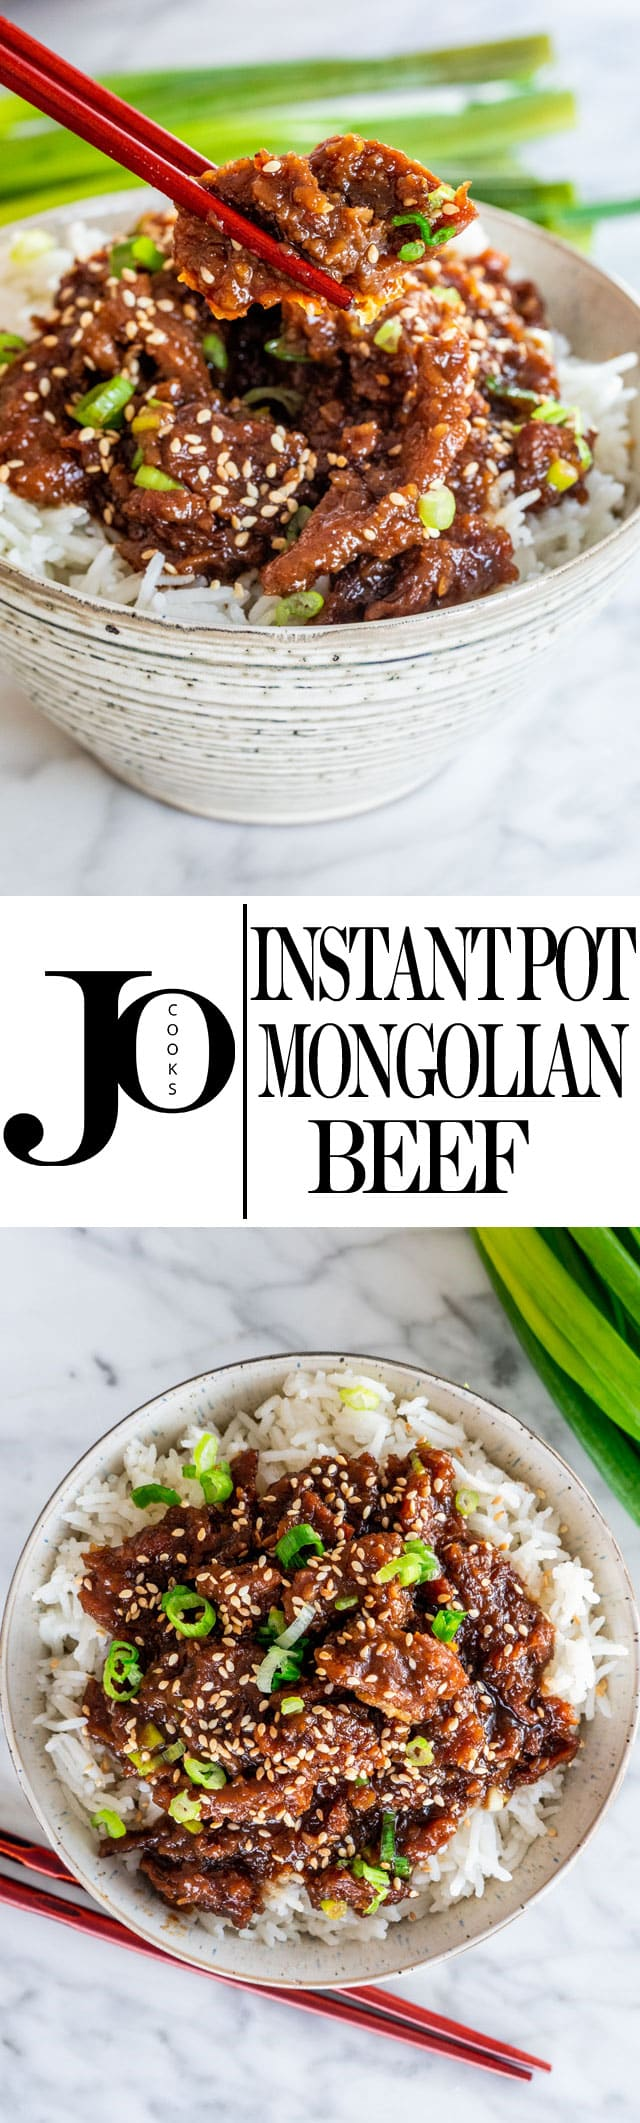 This Instant Pot Mongolian Beef is your answer to